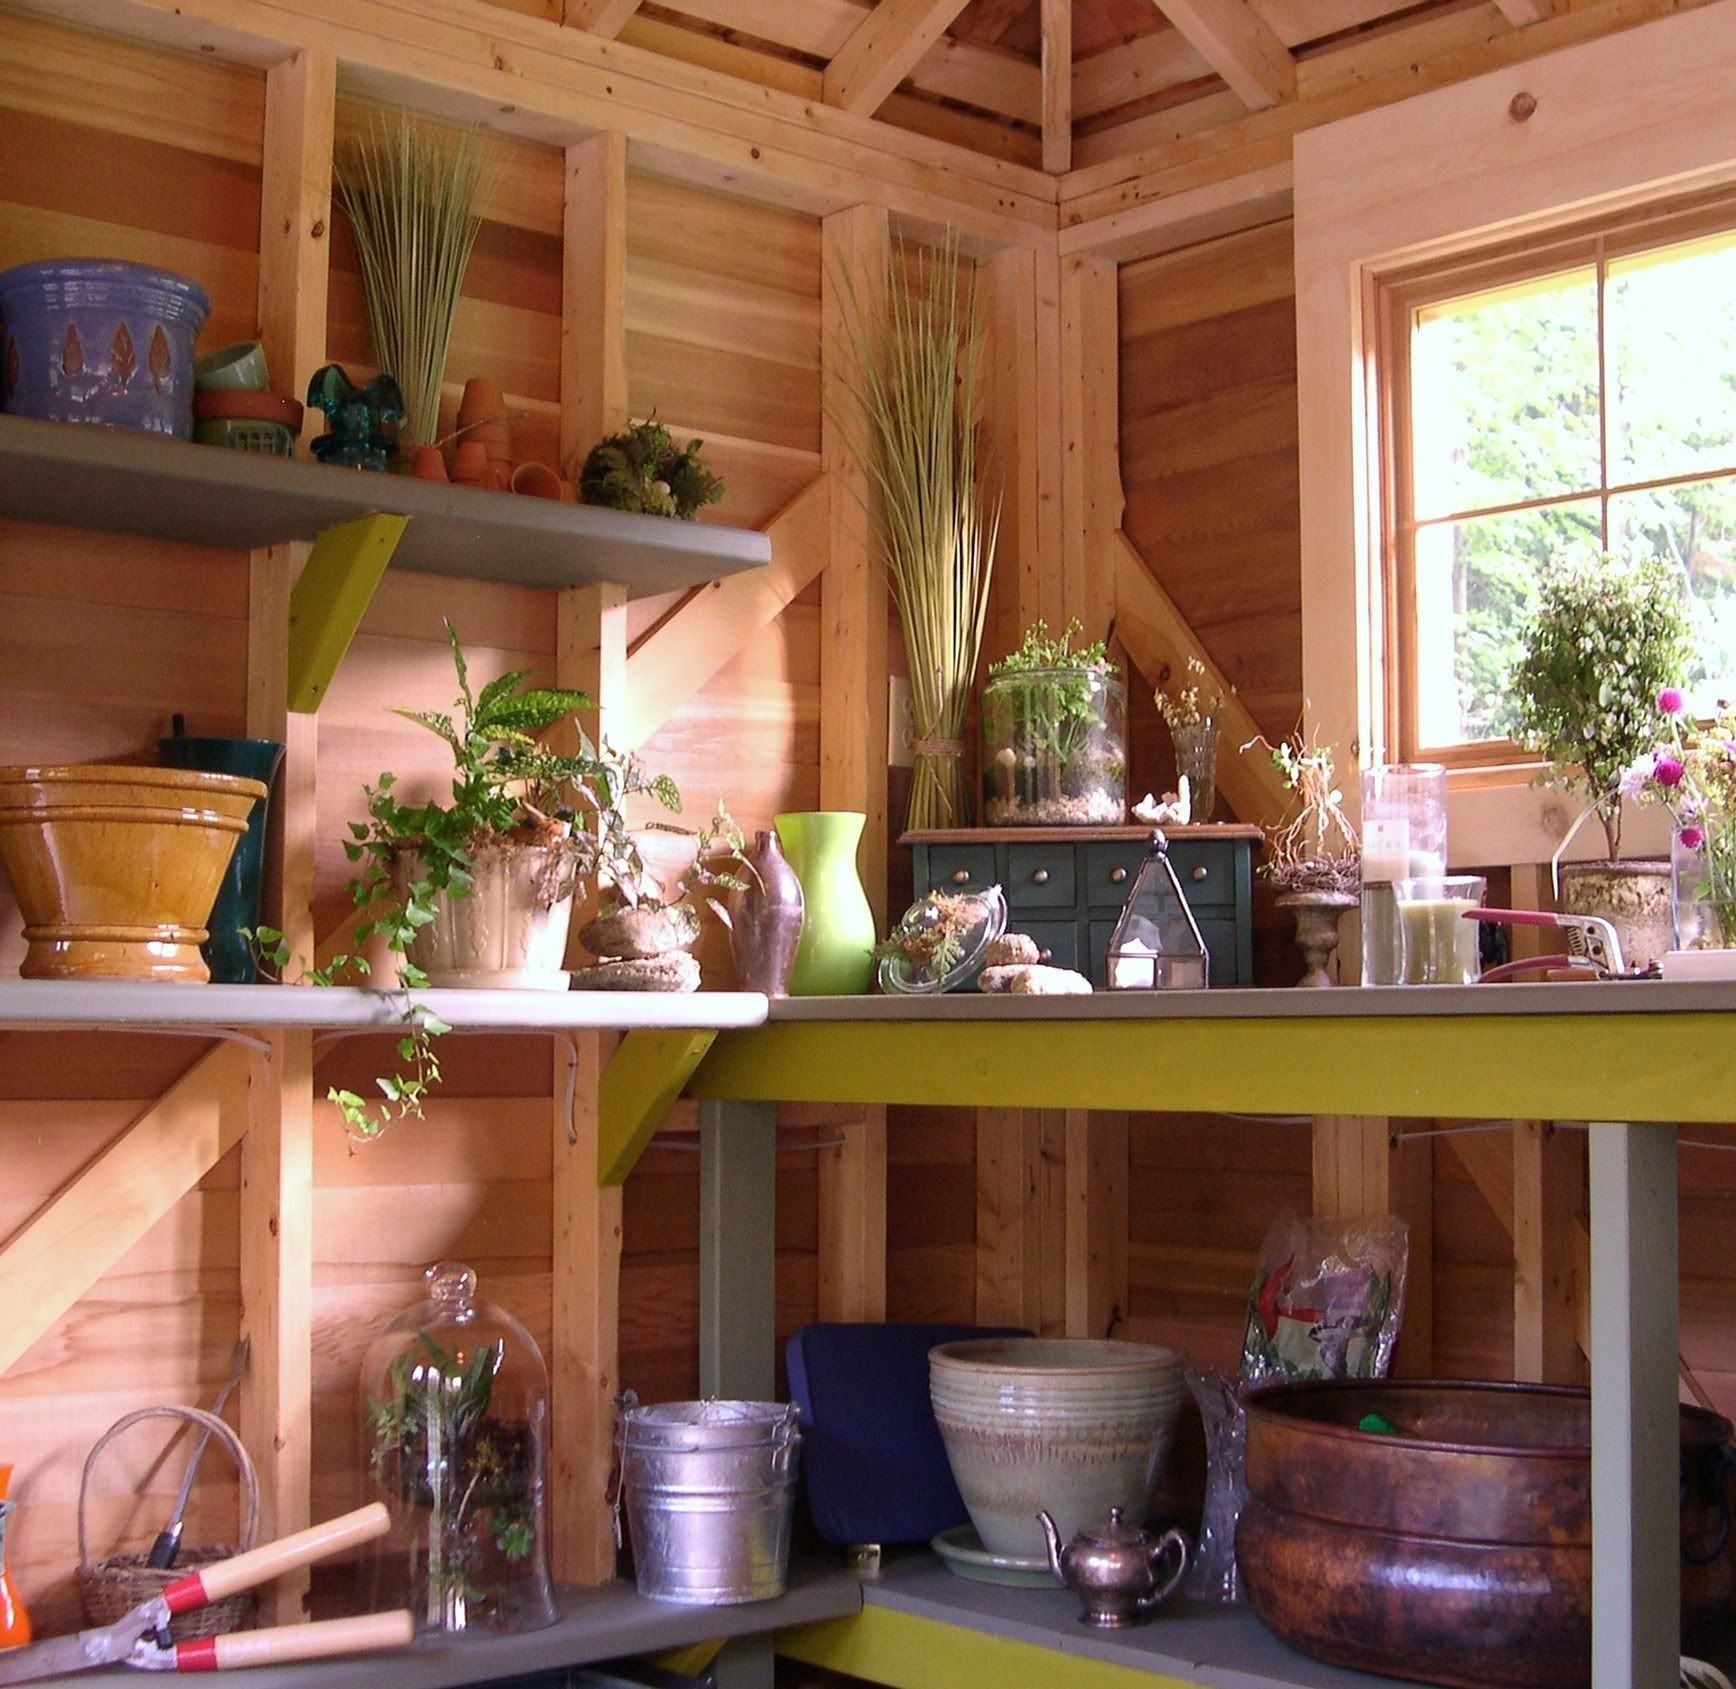 Charming Garden Sheds From Rustic to Modern | Gardens, Interiors ...